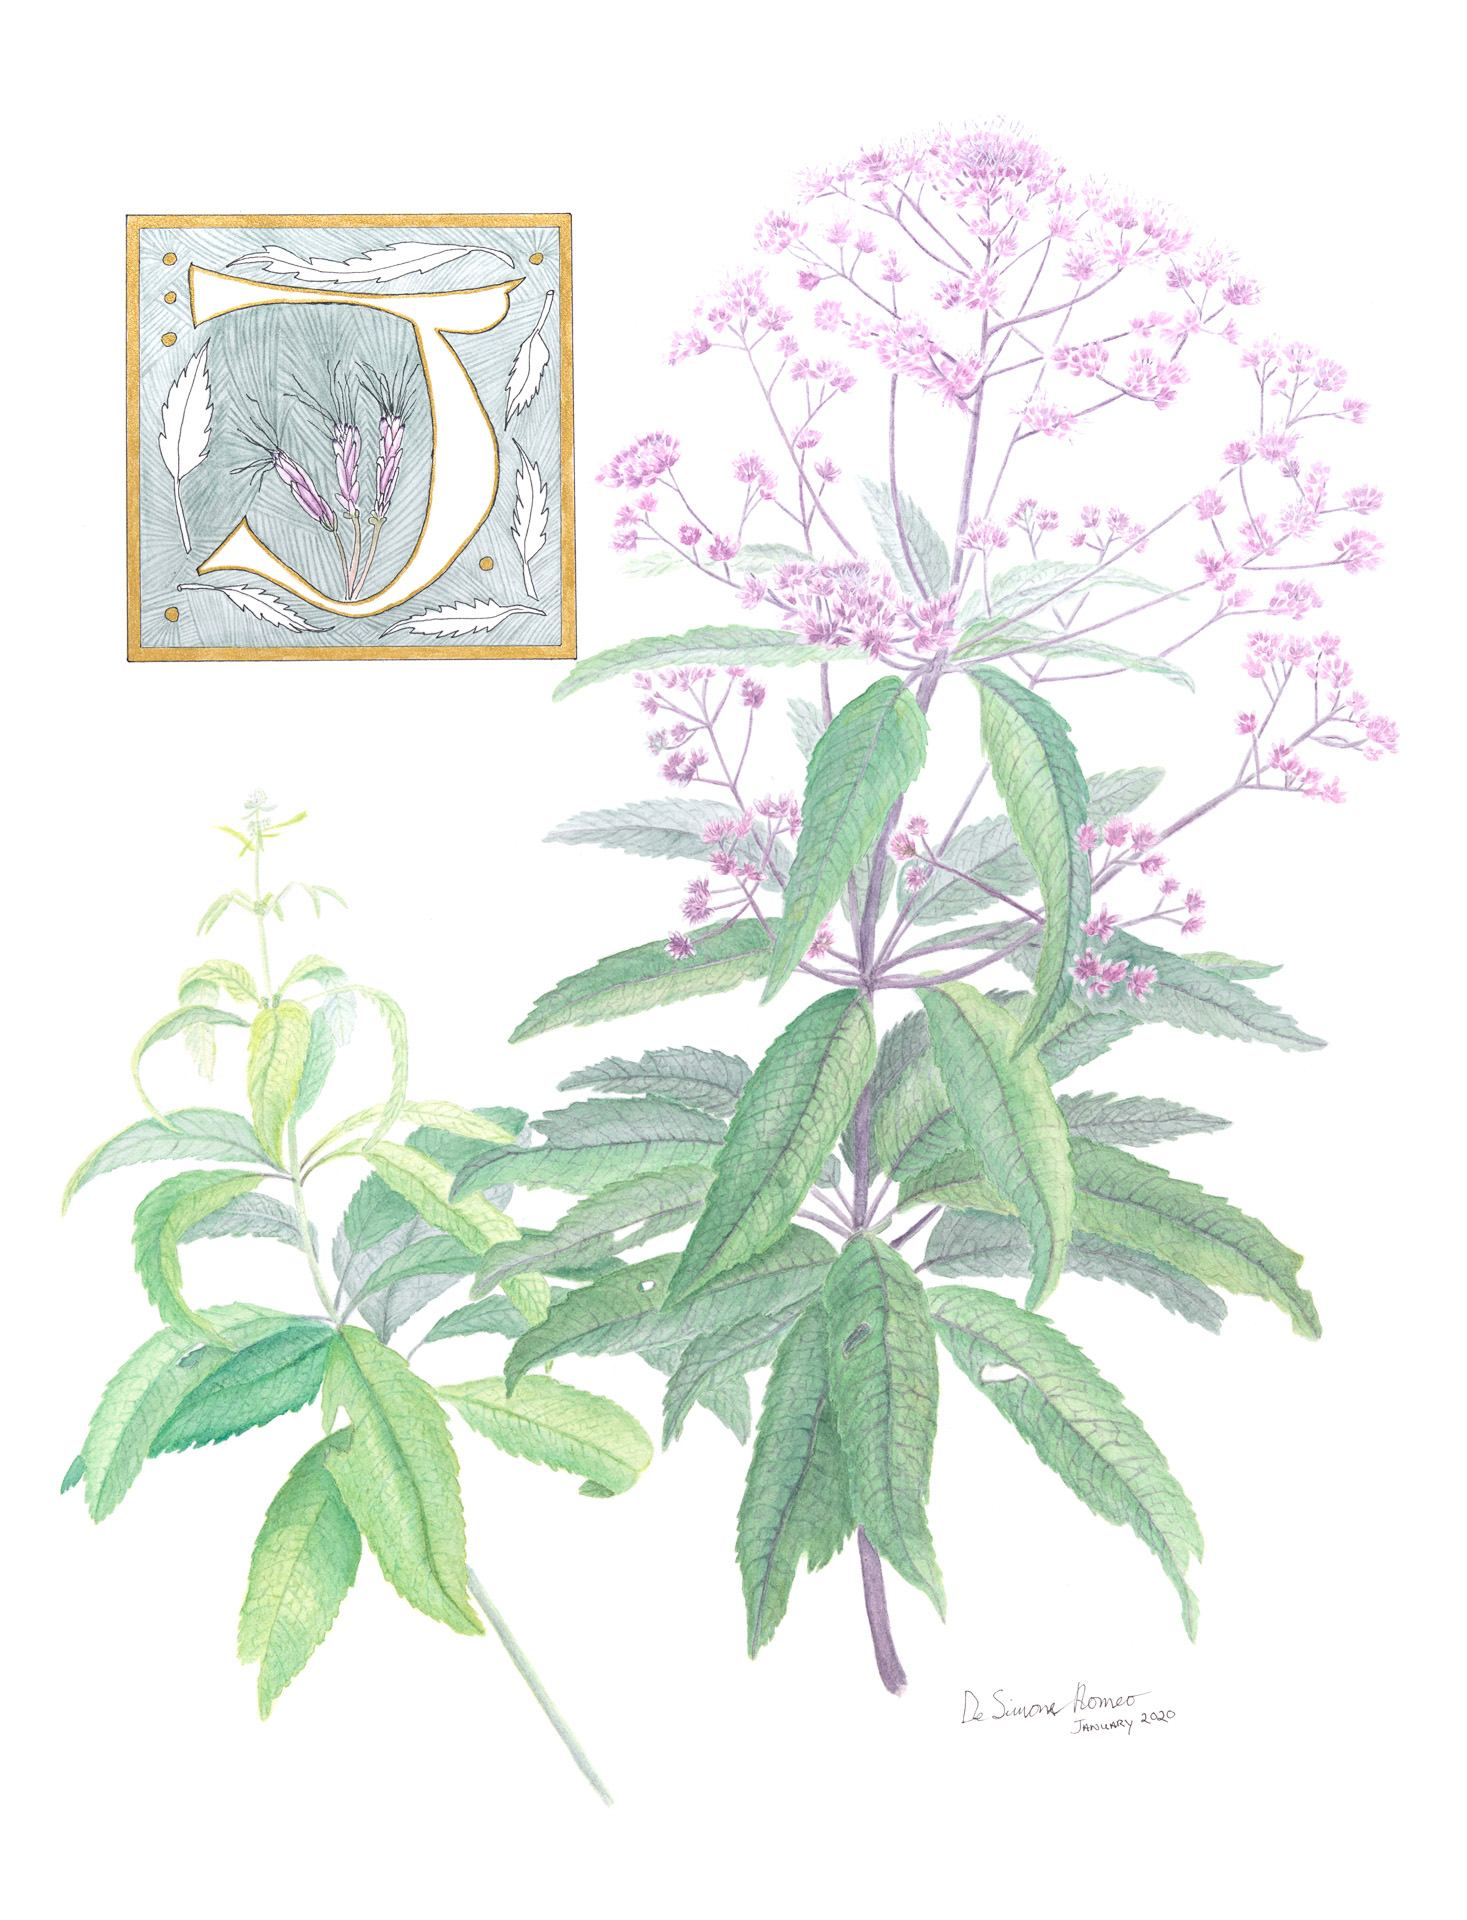 Joe-pye weed, Eutrochium fistulosum, Watercolor, ink and gouache by Pamela DeSimone Romeo